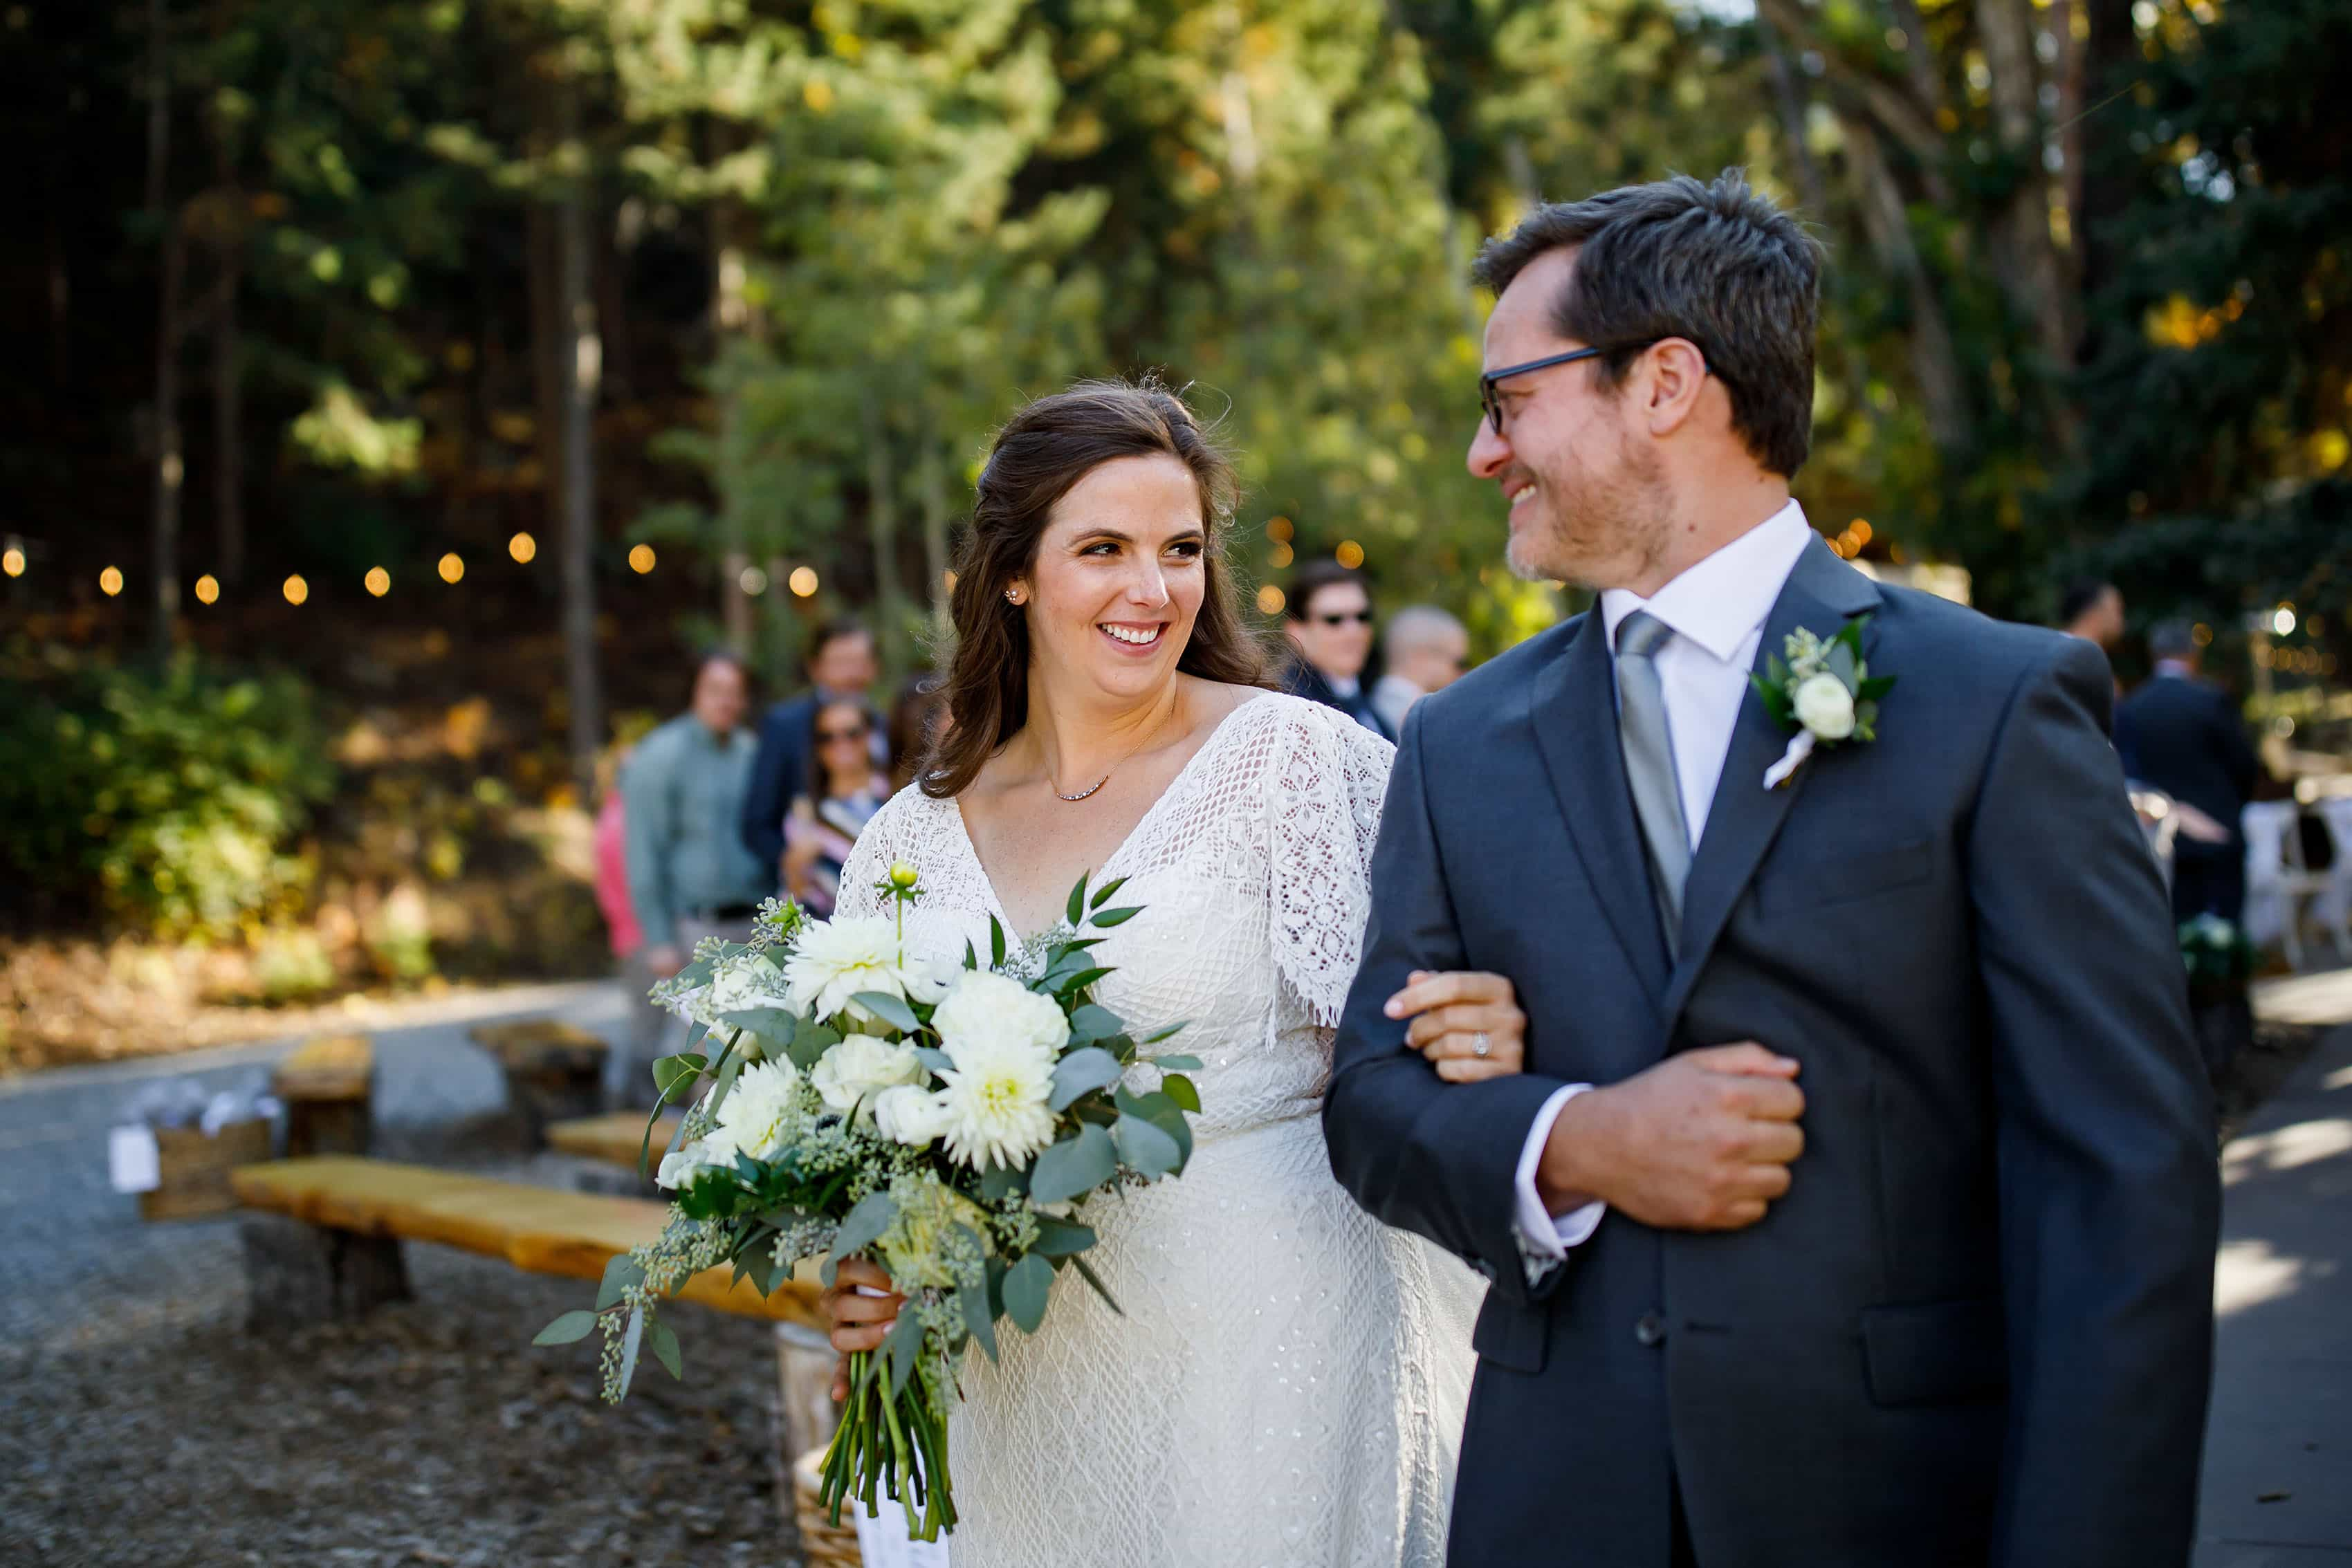 Kate smiles at Brian with her classic bouquet after their wedding ceremony at Blackstone Rivers Ranch